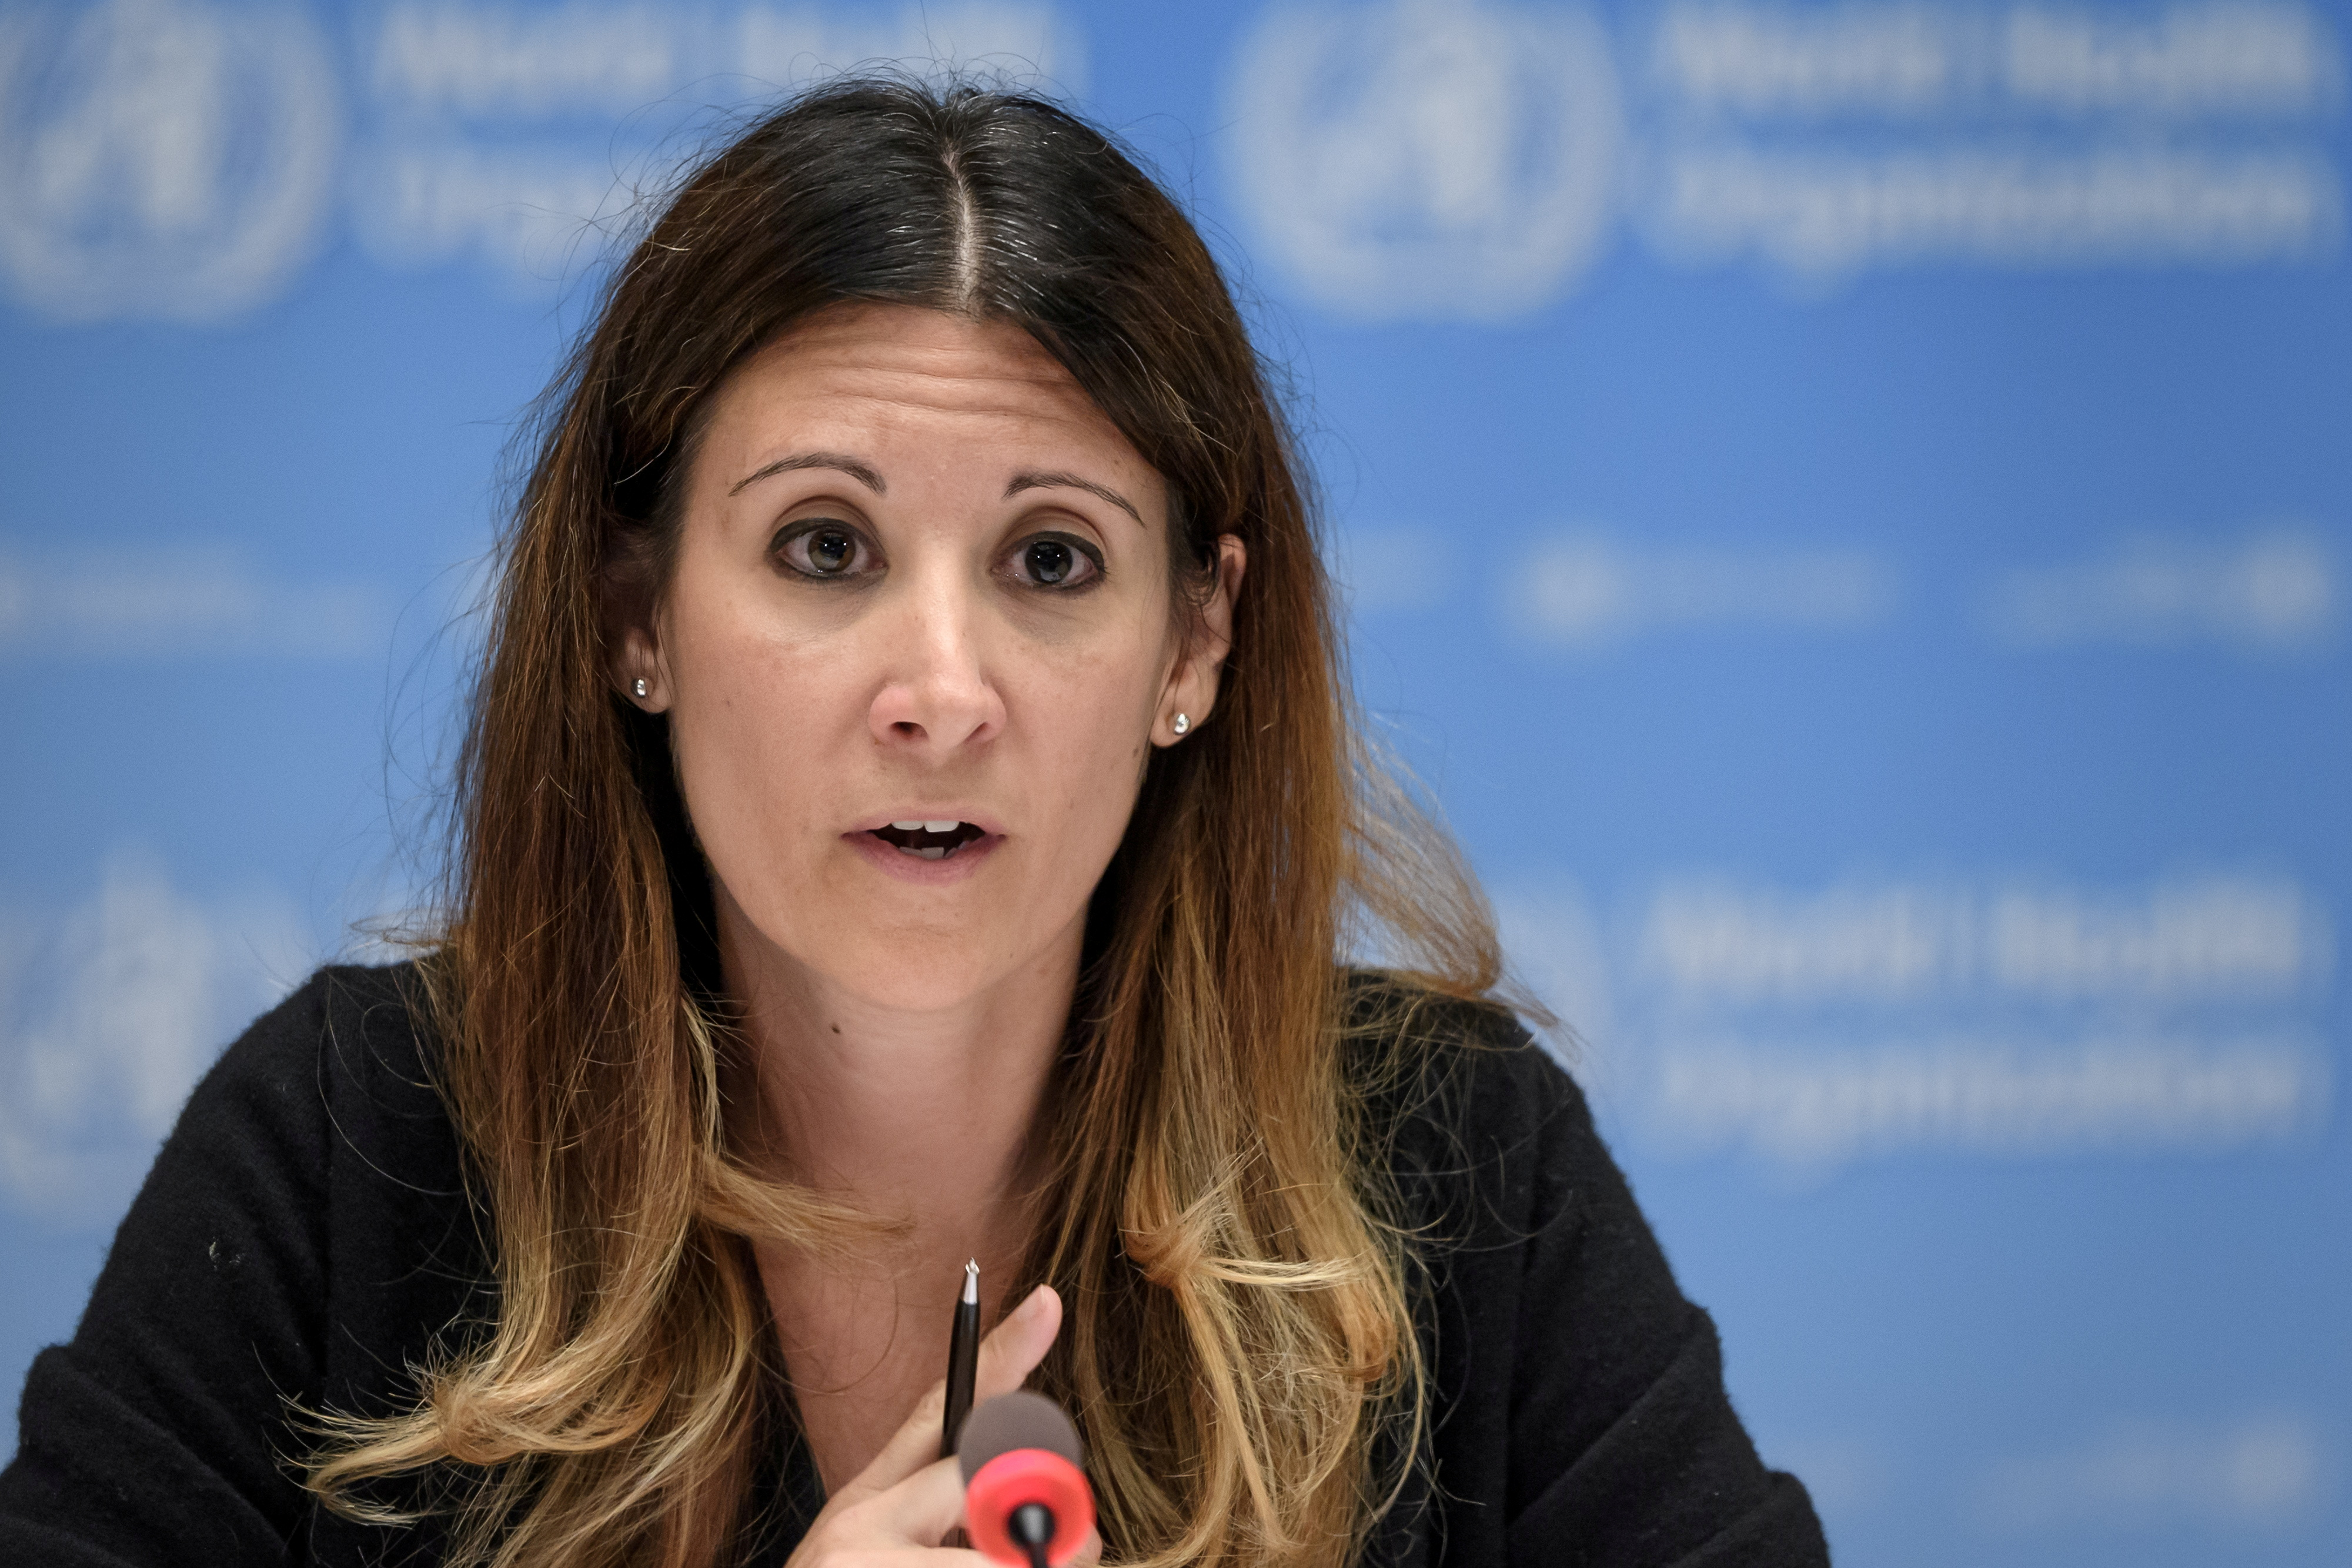 WHO Technical lead head COVID-19 Maria Van Kerkhove attends a news conference organized by Geneva Association of United Nations Correspondents (ACANU) amid the COVID-19 outbreak, caused by the novel coronavirus, at the WHO headquarters in Geneva, Switzerland July 3, 2020. Fabrice Coffrini/Pool via REUTERS/File Photo